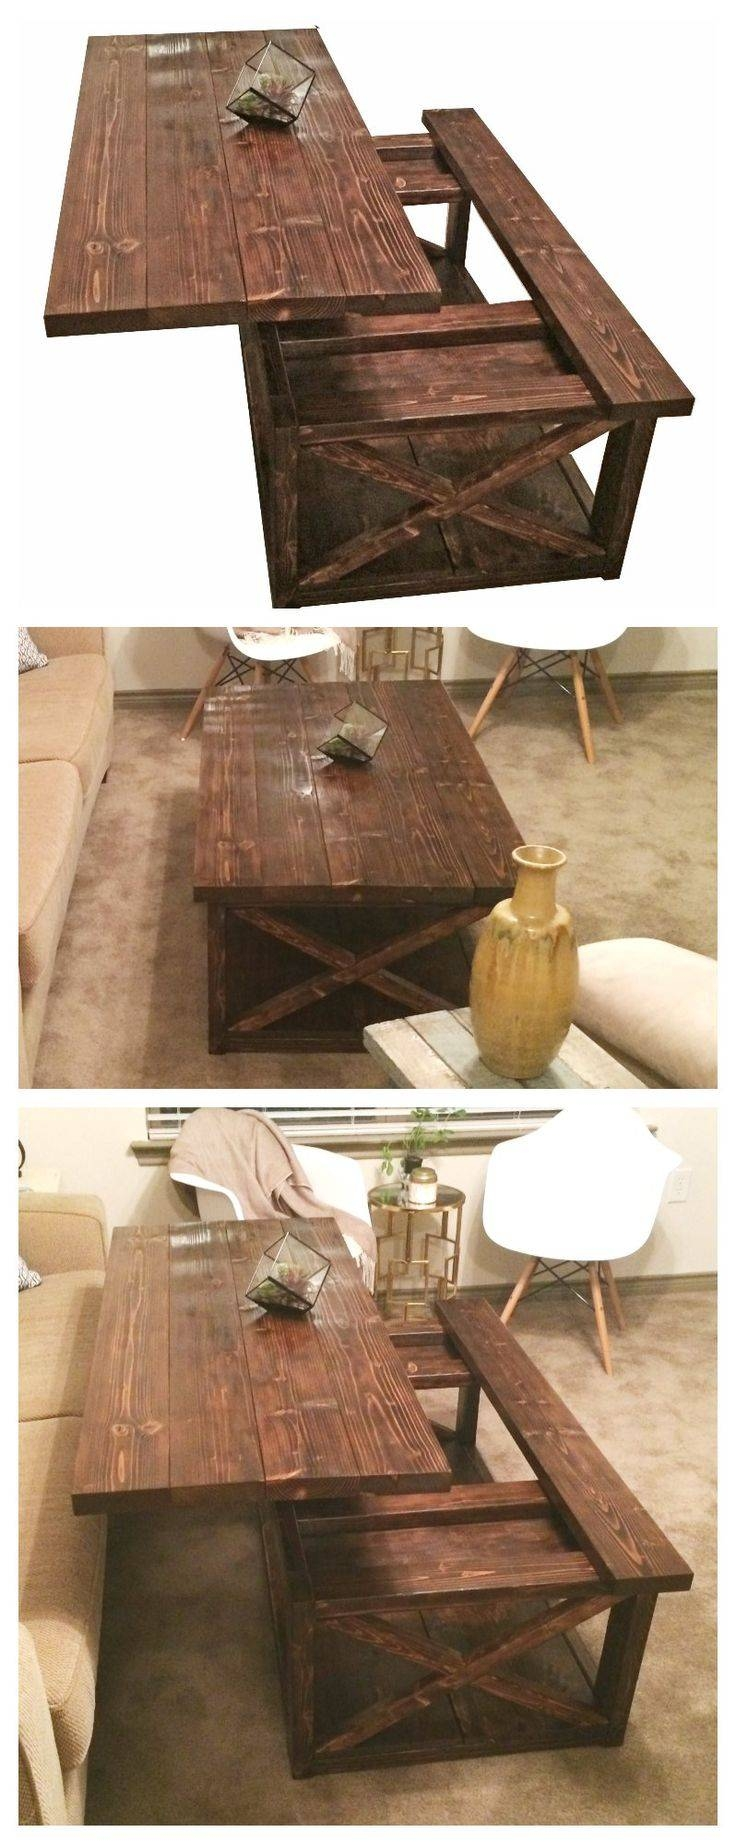 Best 20+ Rustic Wood Coffee Table Ideas On Pinterest | Rustic inside Rustic Wood Diy Coffee Tables (Image 5 of 30)